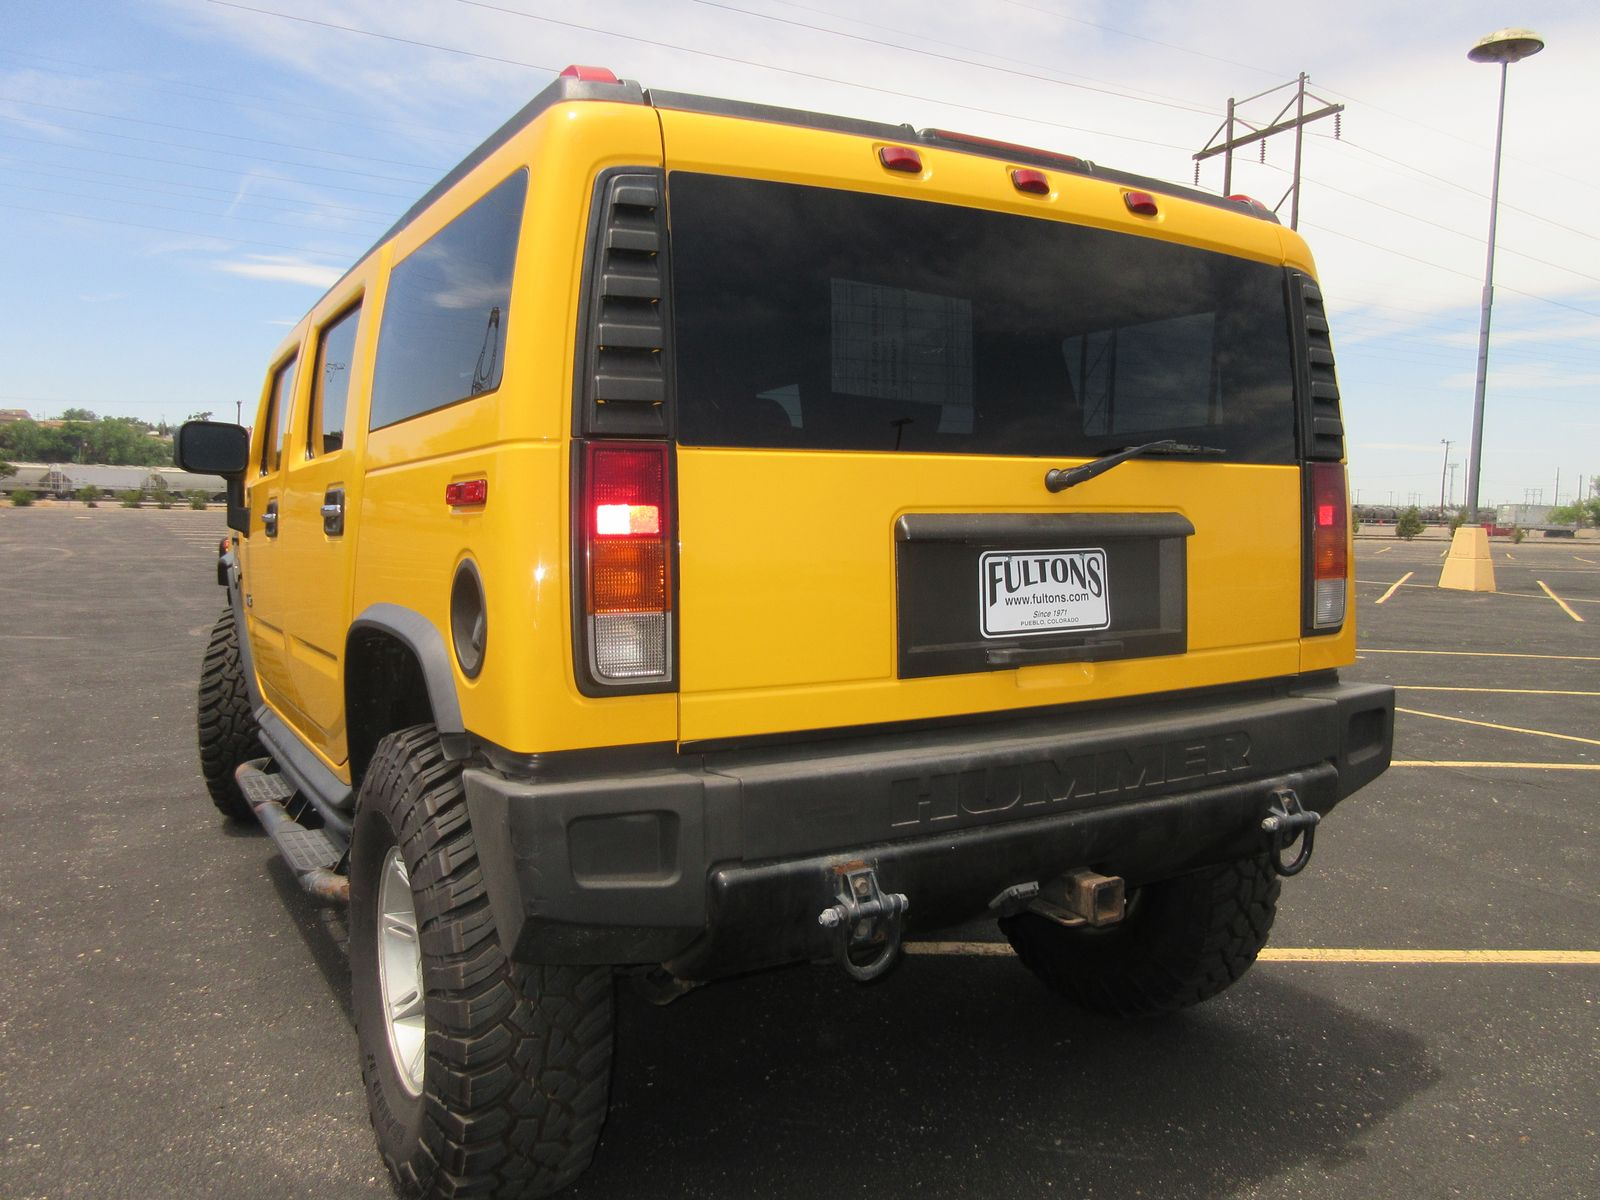 2004 hummer h2 awd w 20s fultons used cars inc 2004 hummer h2 awd w 20s fultons used cars inc in colorado vanachro Image collections